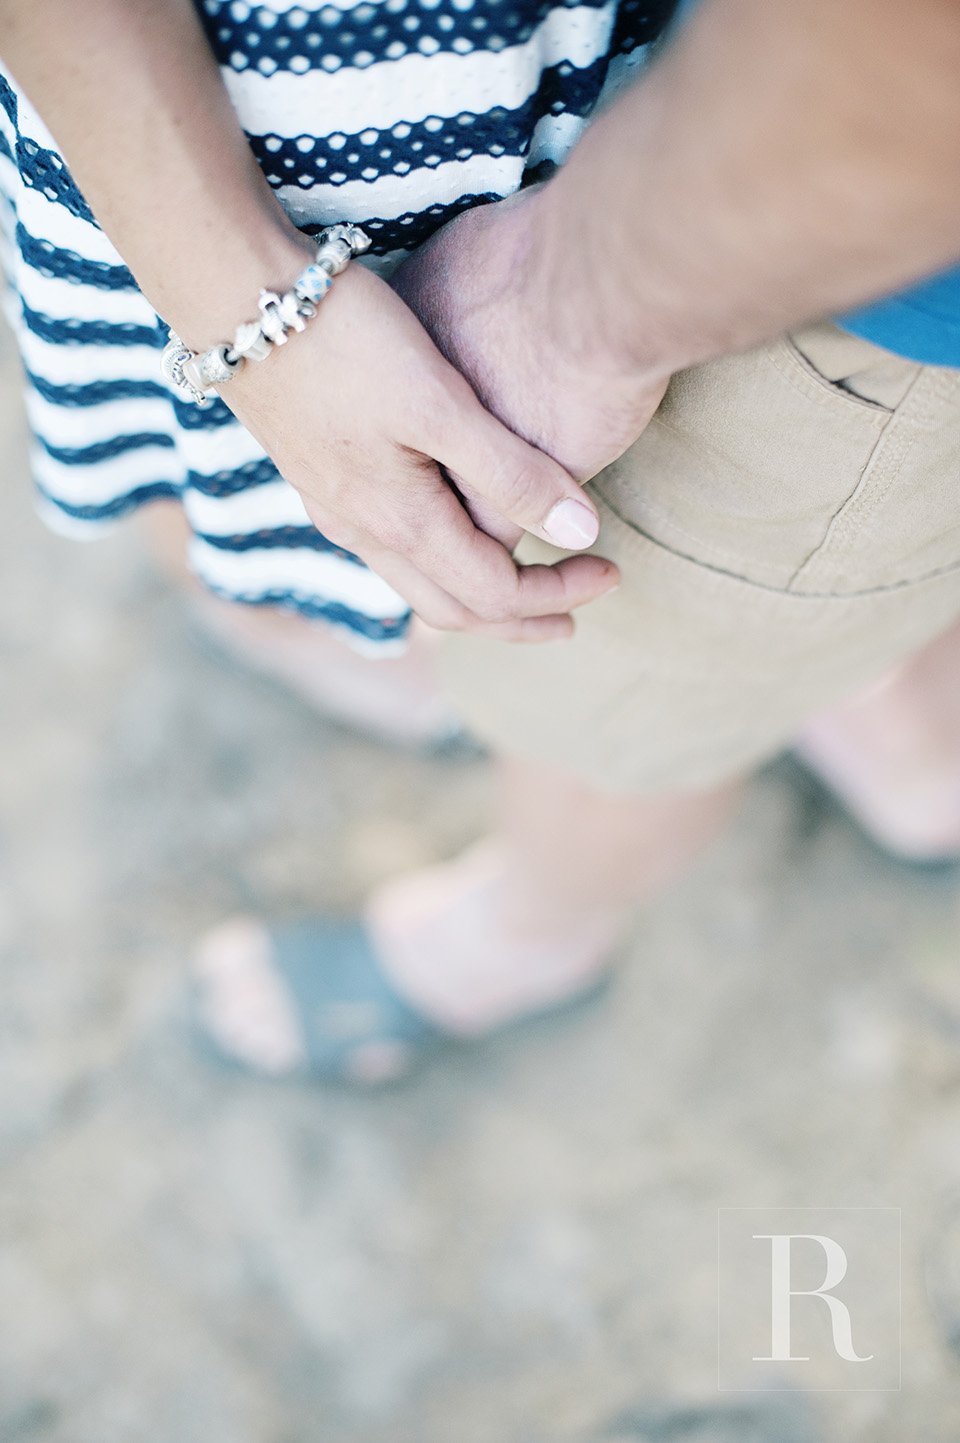 RYAN PARKER PHOTOGRAPHY_ESTEE & BERNARD_ENGAGEMENT SESSION_JOHANNESBURG DSC_1902.jpg